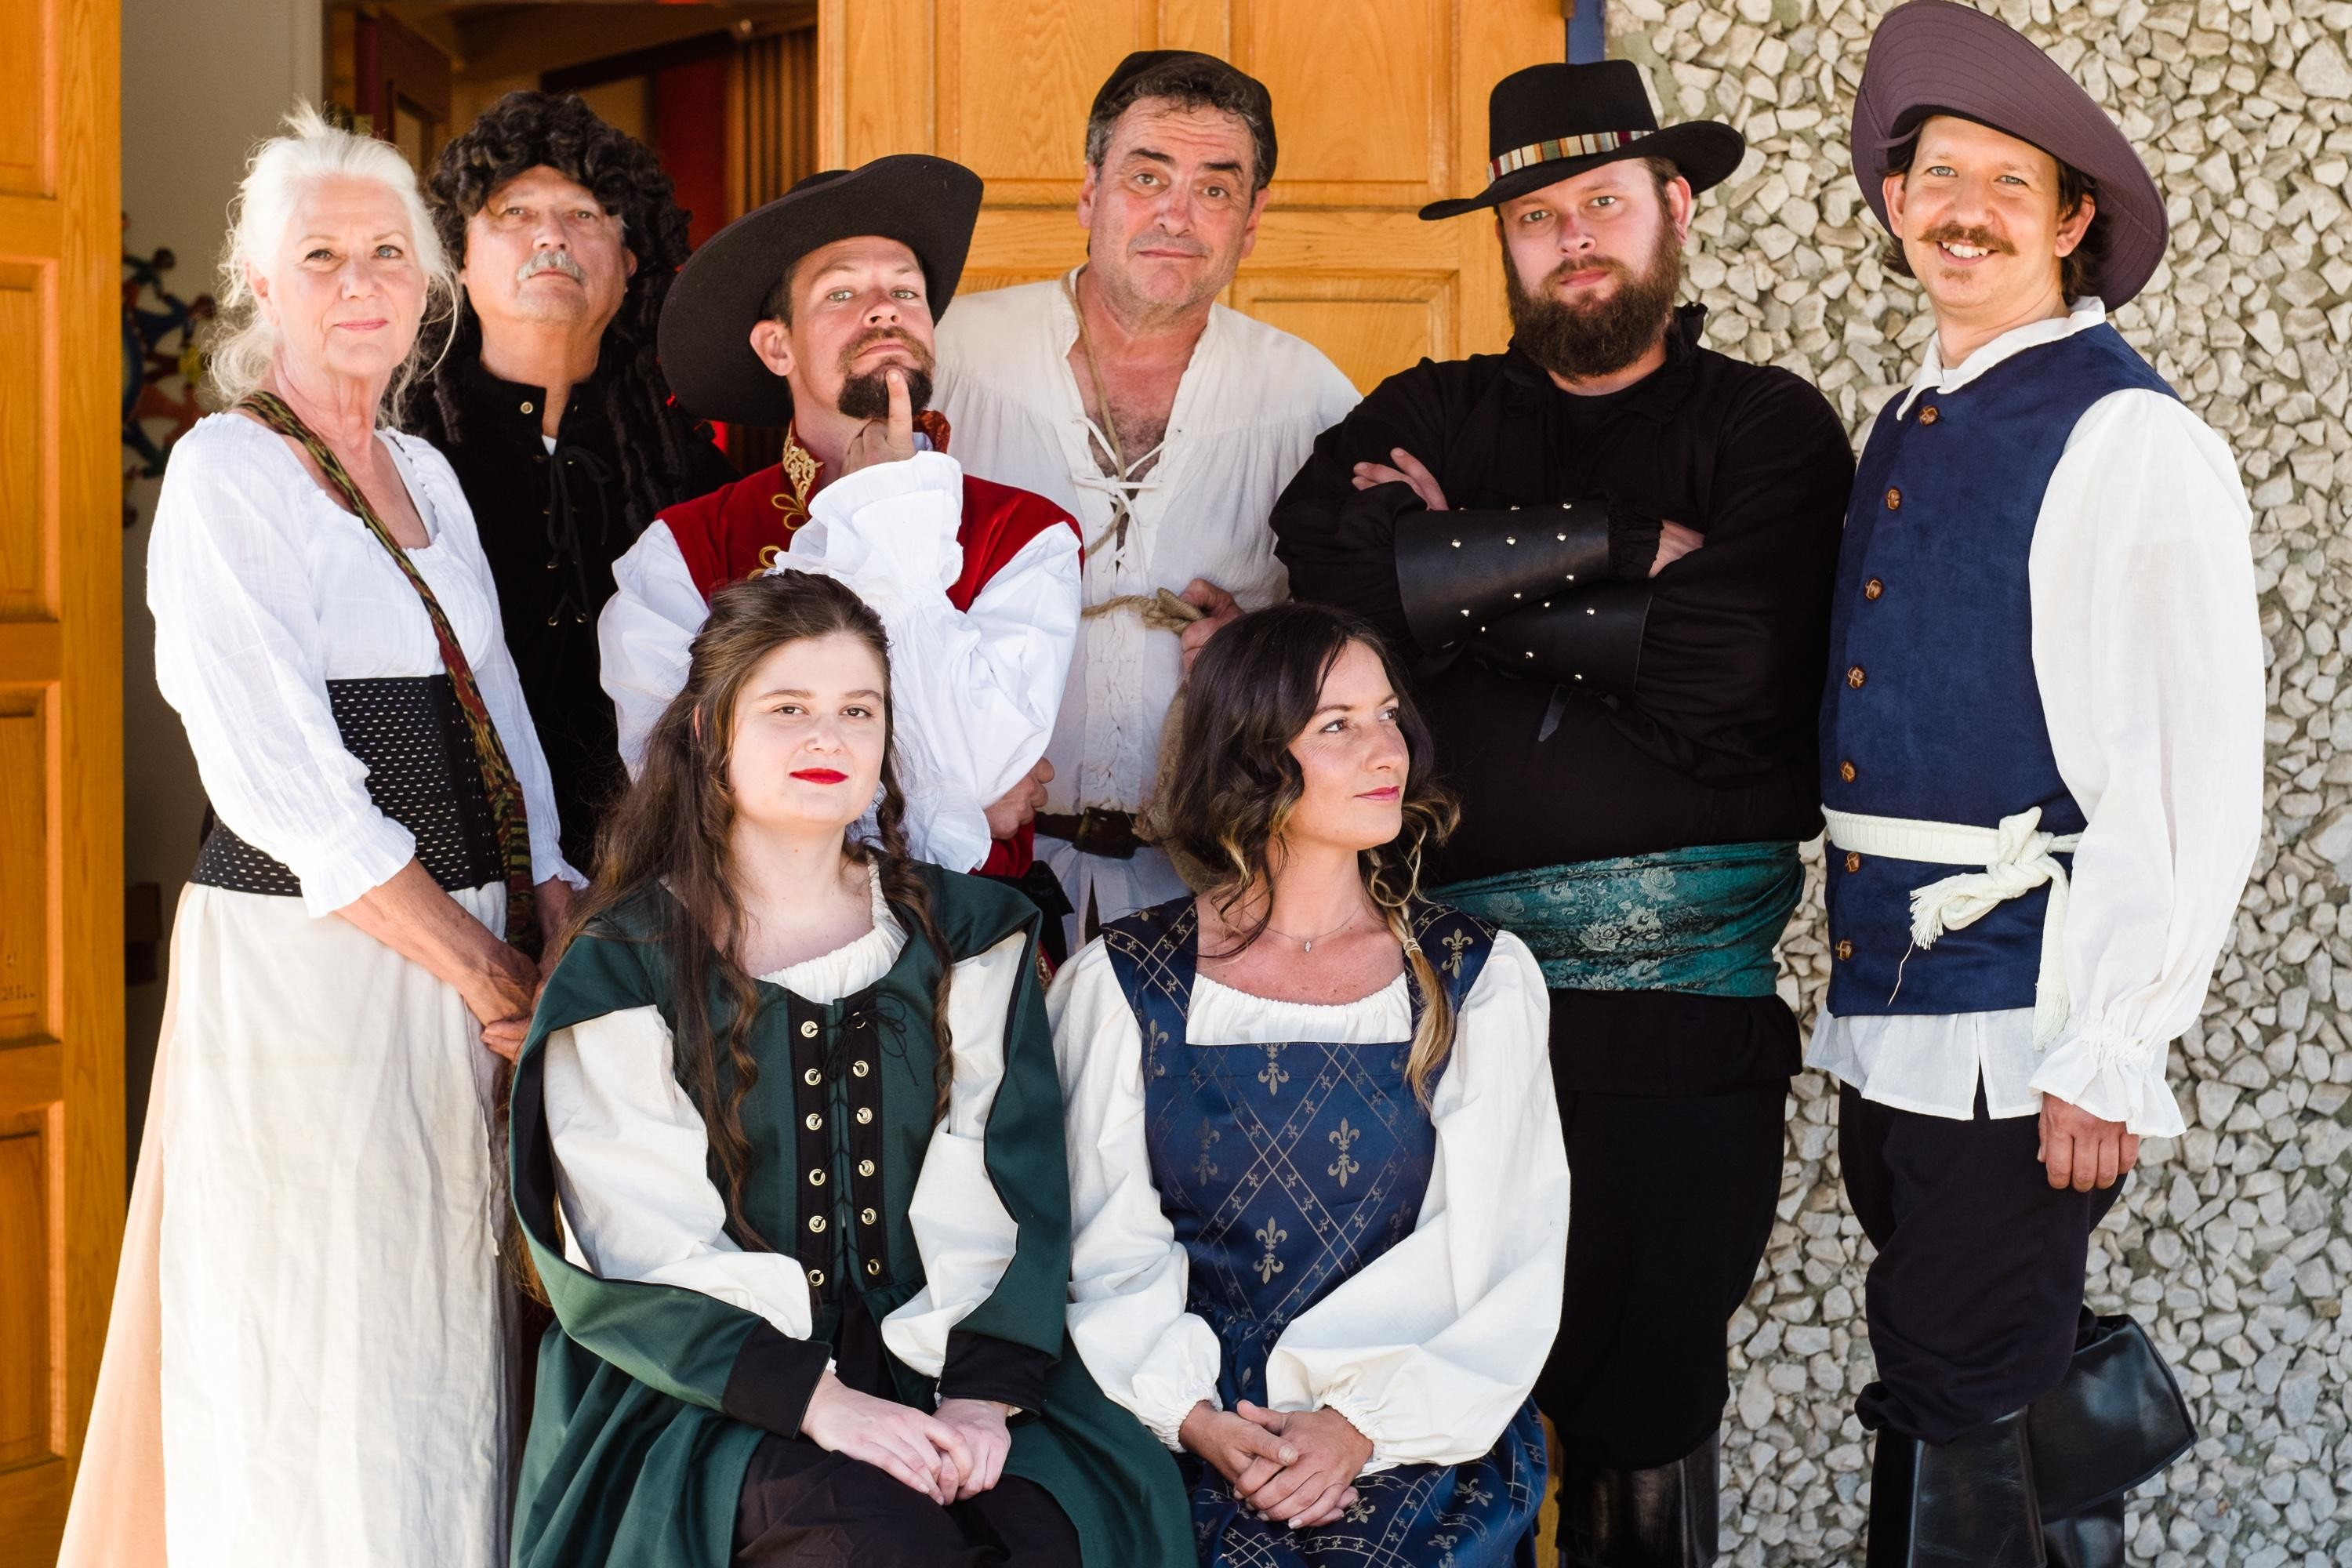 The Liar brings poetry and laughter to Morro Bay | Arts | San Luis